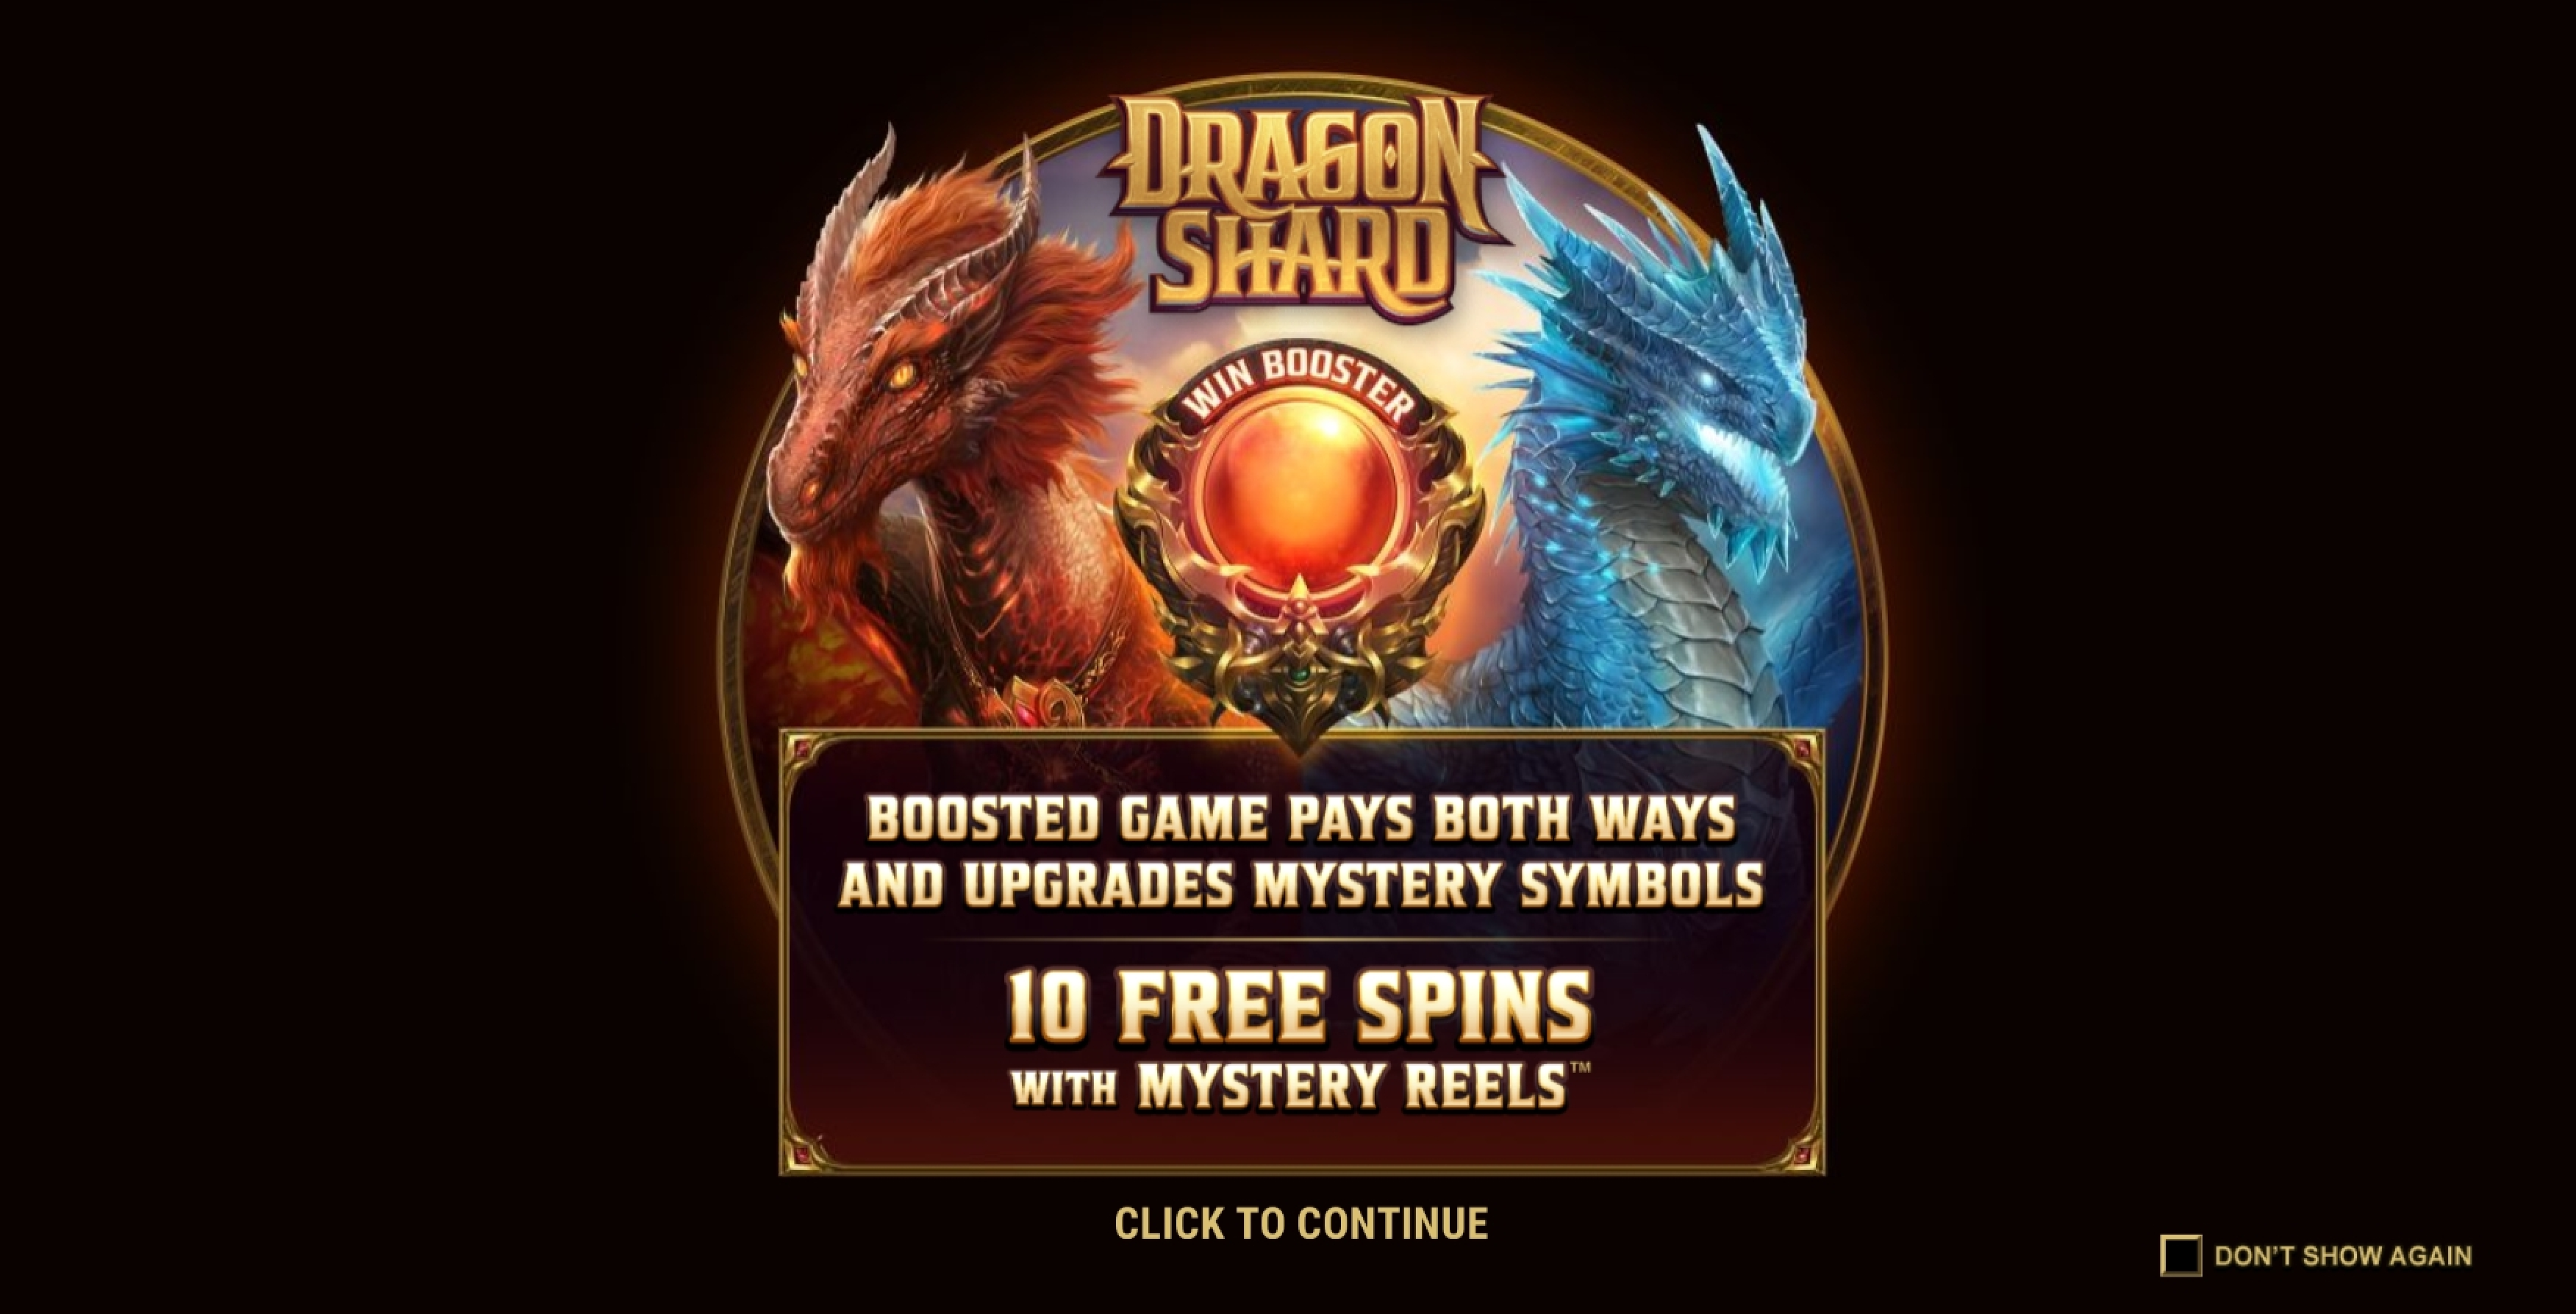 Play Dragon Shard Free Casino Slot Game by Stormcraft Studios